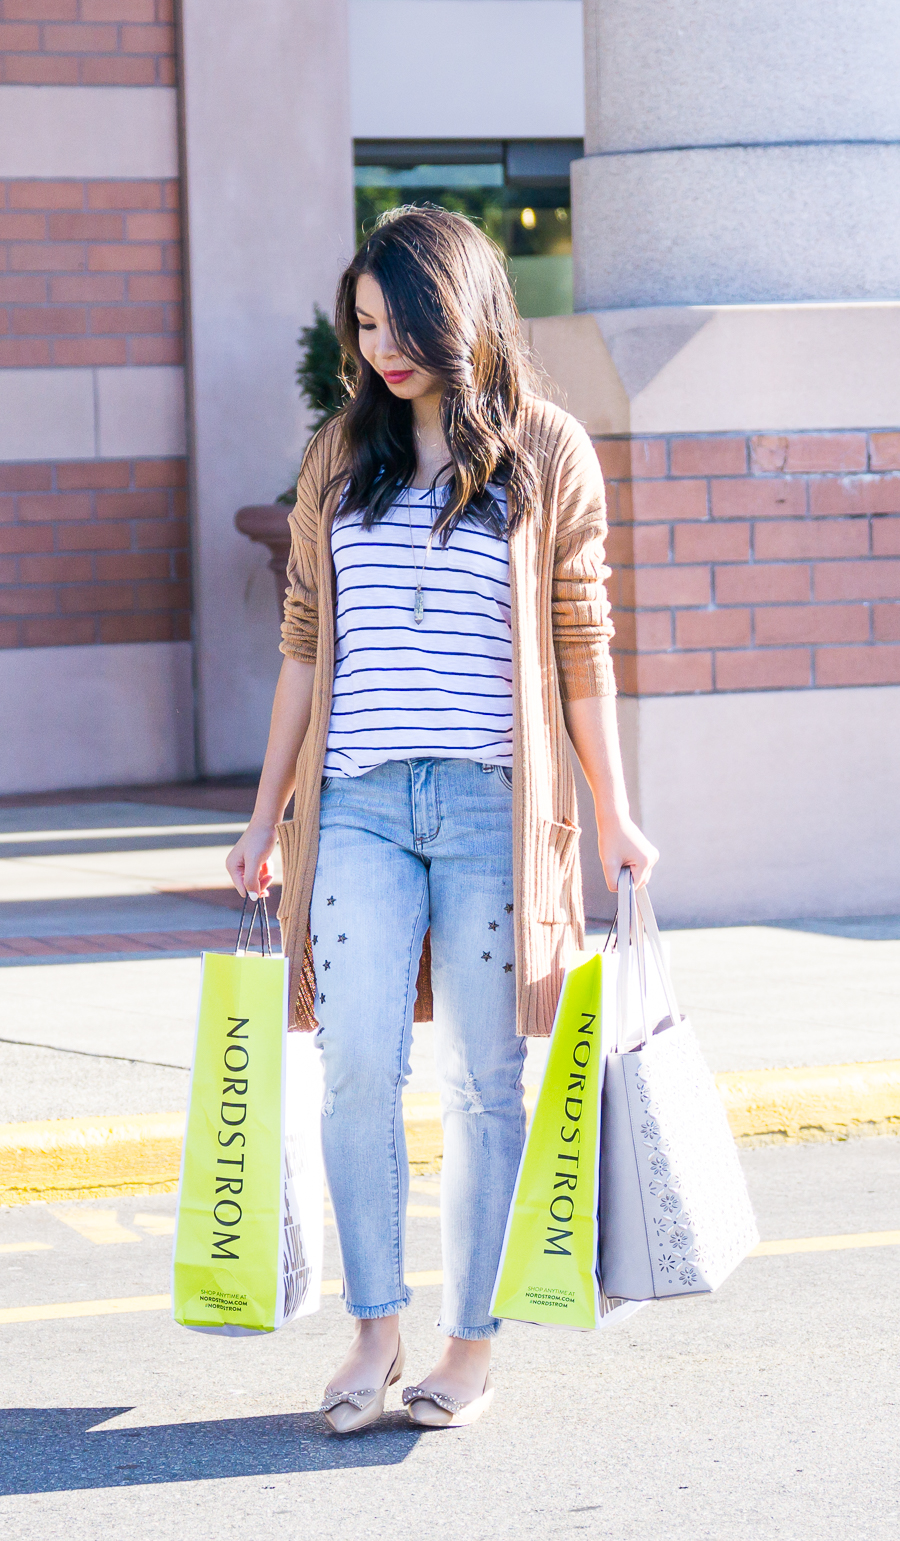 Casual cute outfit, BP cardigan, striped tee, Seattle fashion blogger